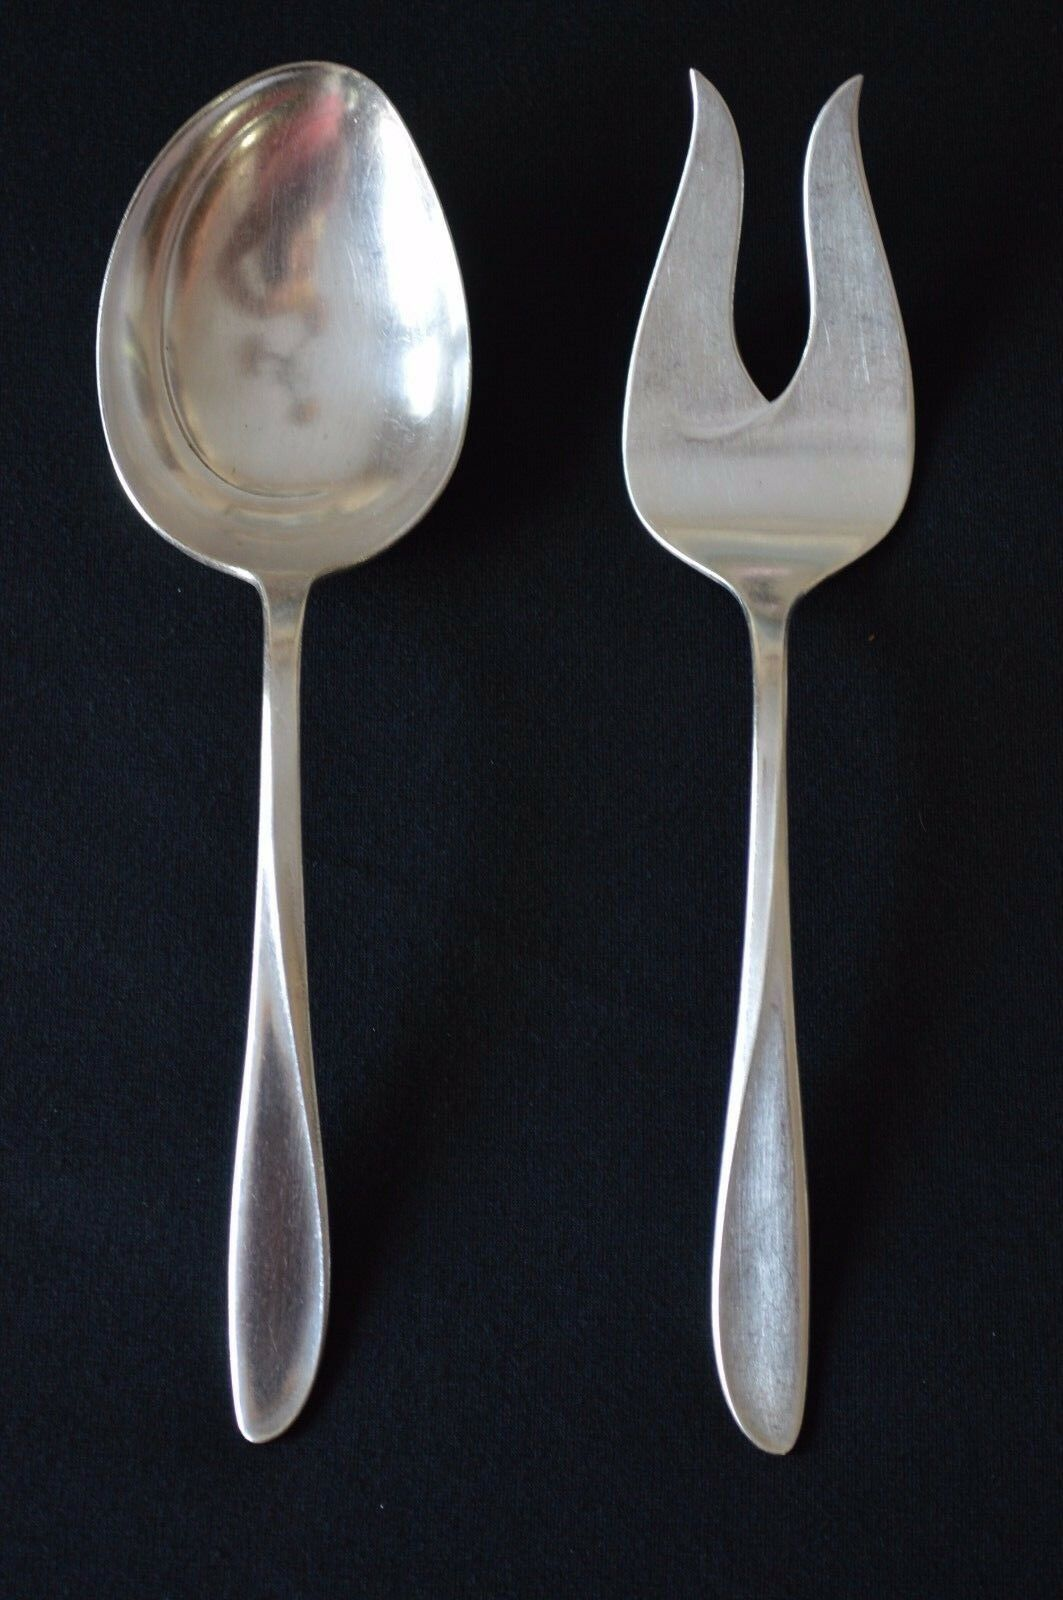 Primary image for Holmes & Edwards Pattern Rhythmic 1957 Serving Spoon & Meat/Serving Fork